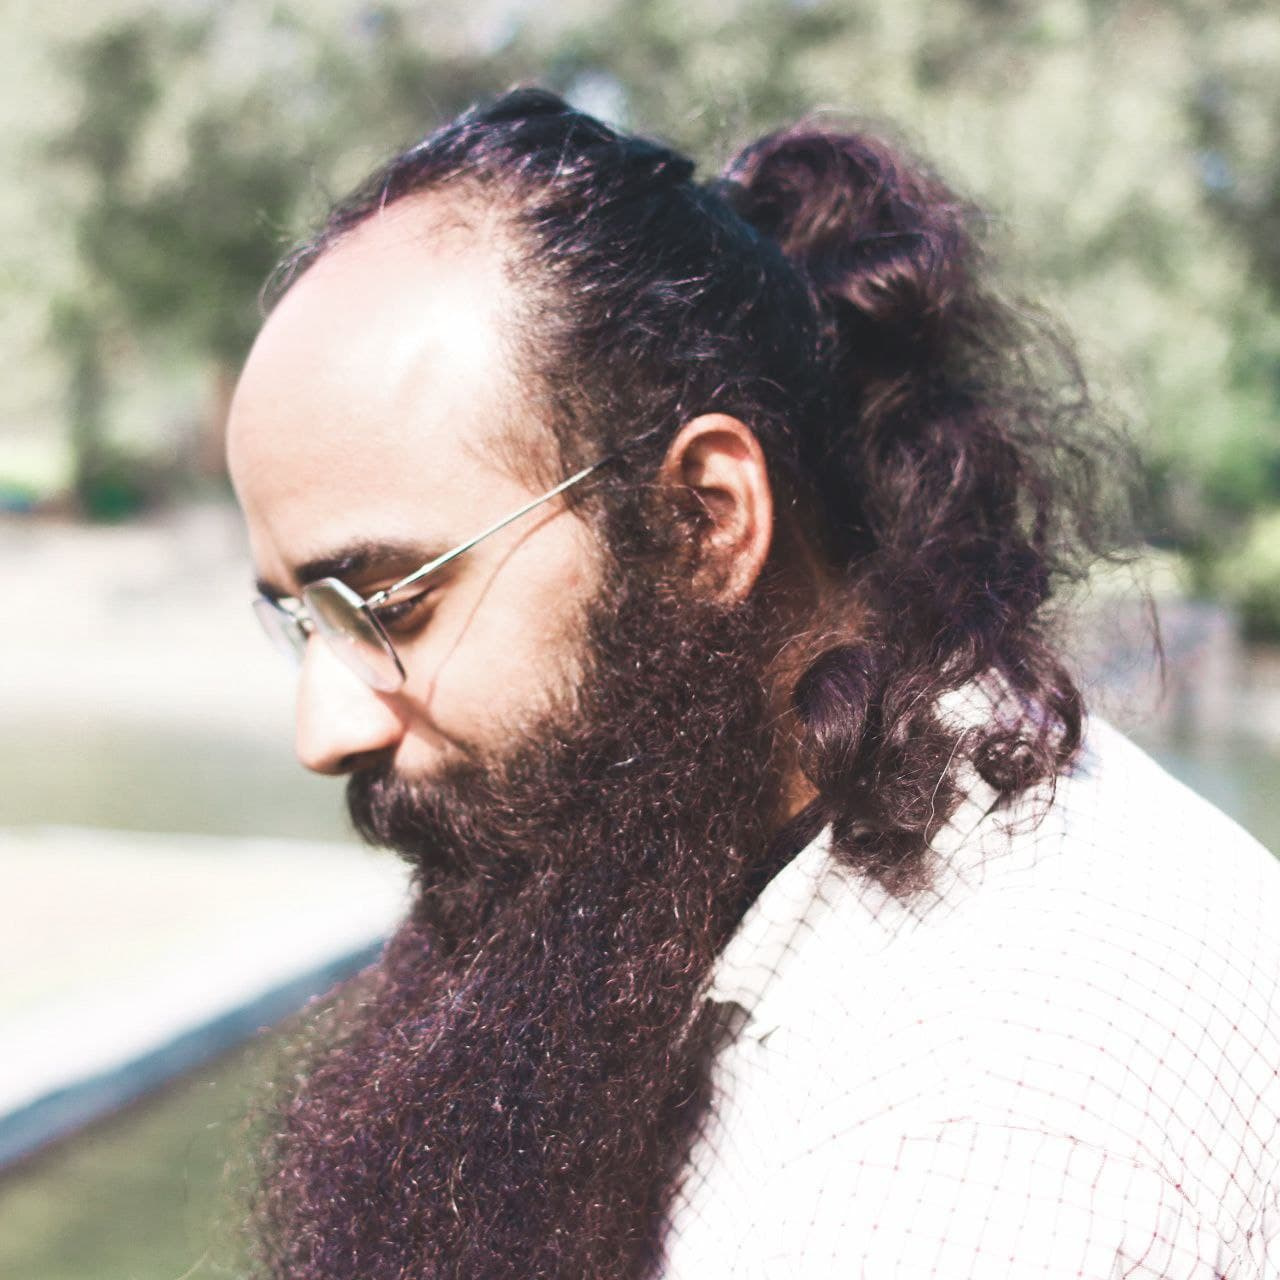 Photo of Guneet Narula's side profile - he is wearing a white shirt and spectacles and is looking down. His long hair and beard are visible with some greenery in the background.